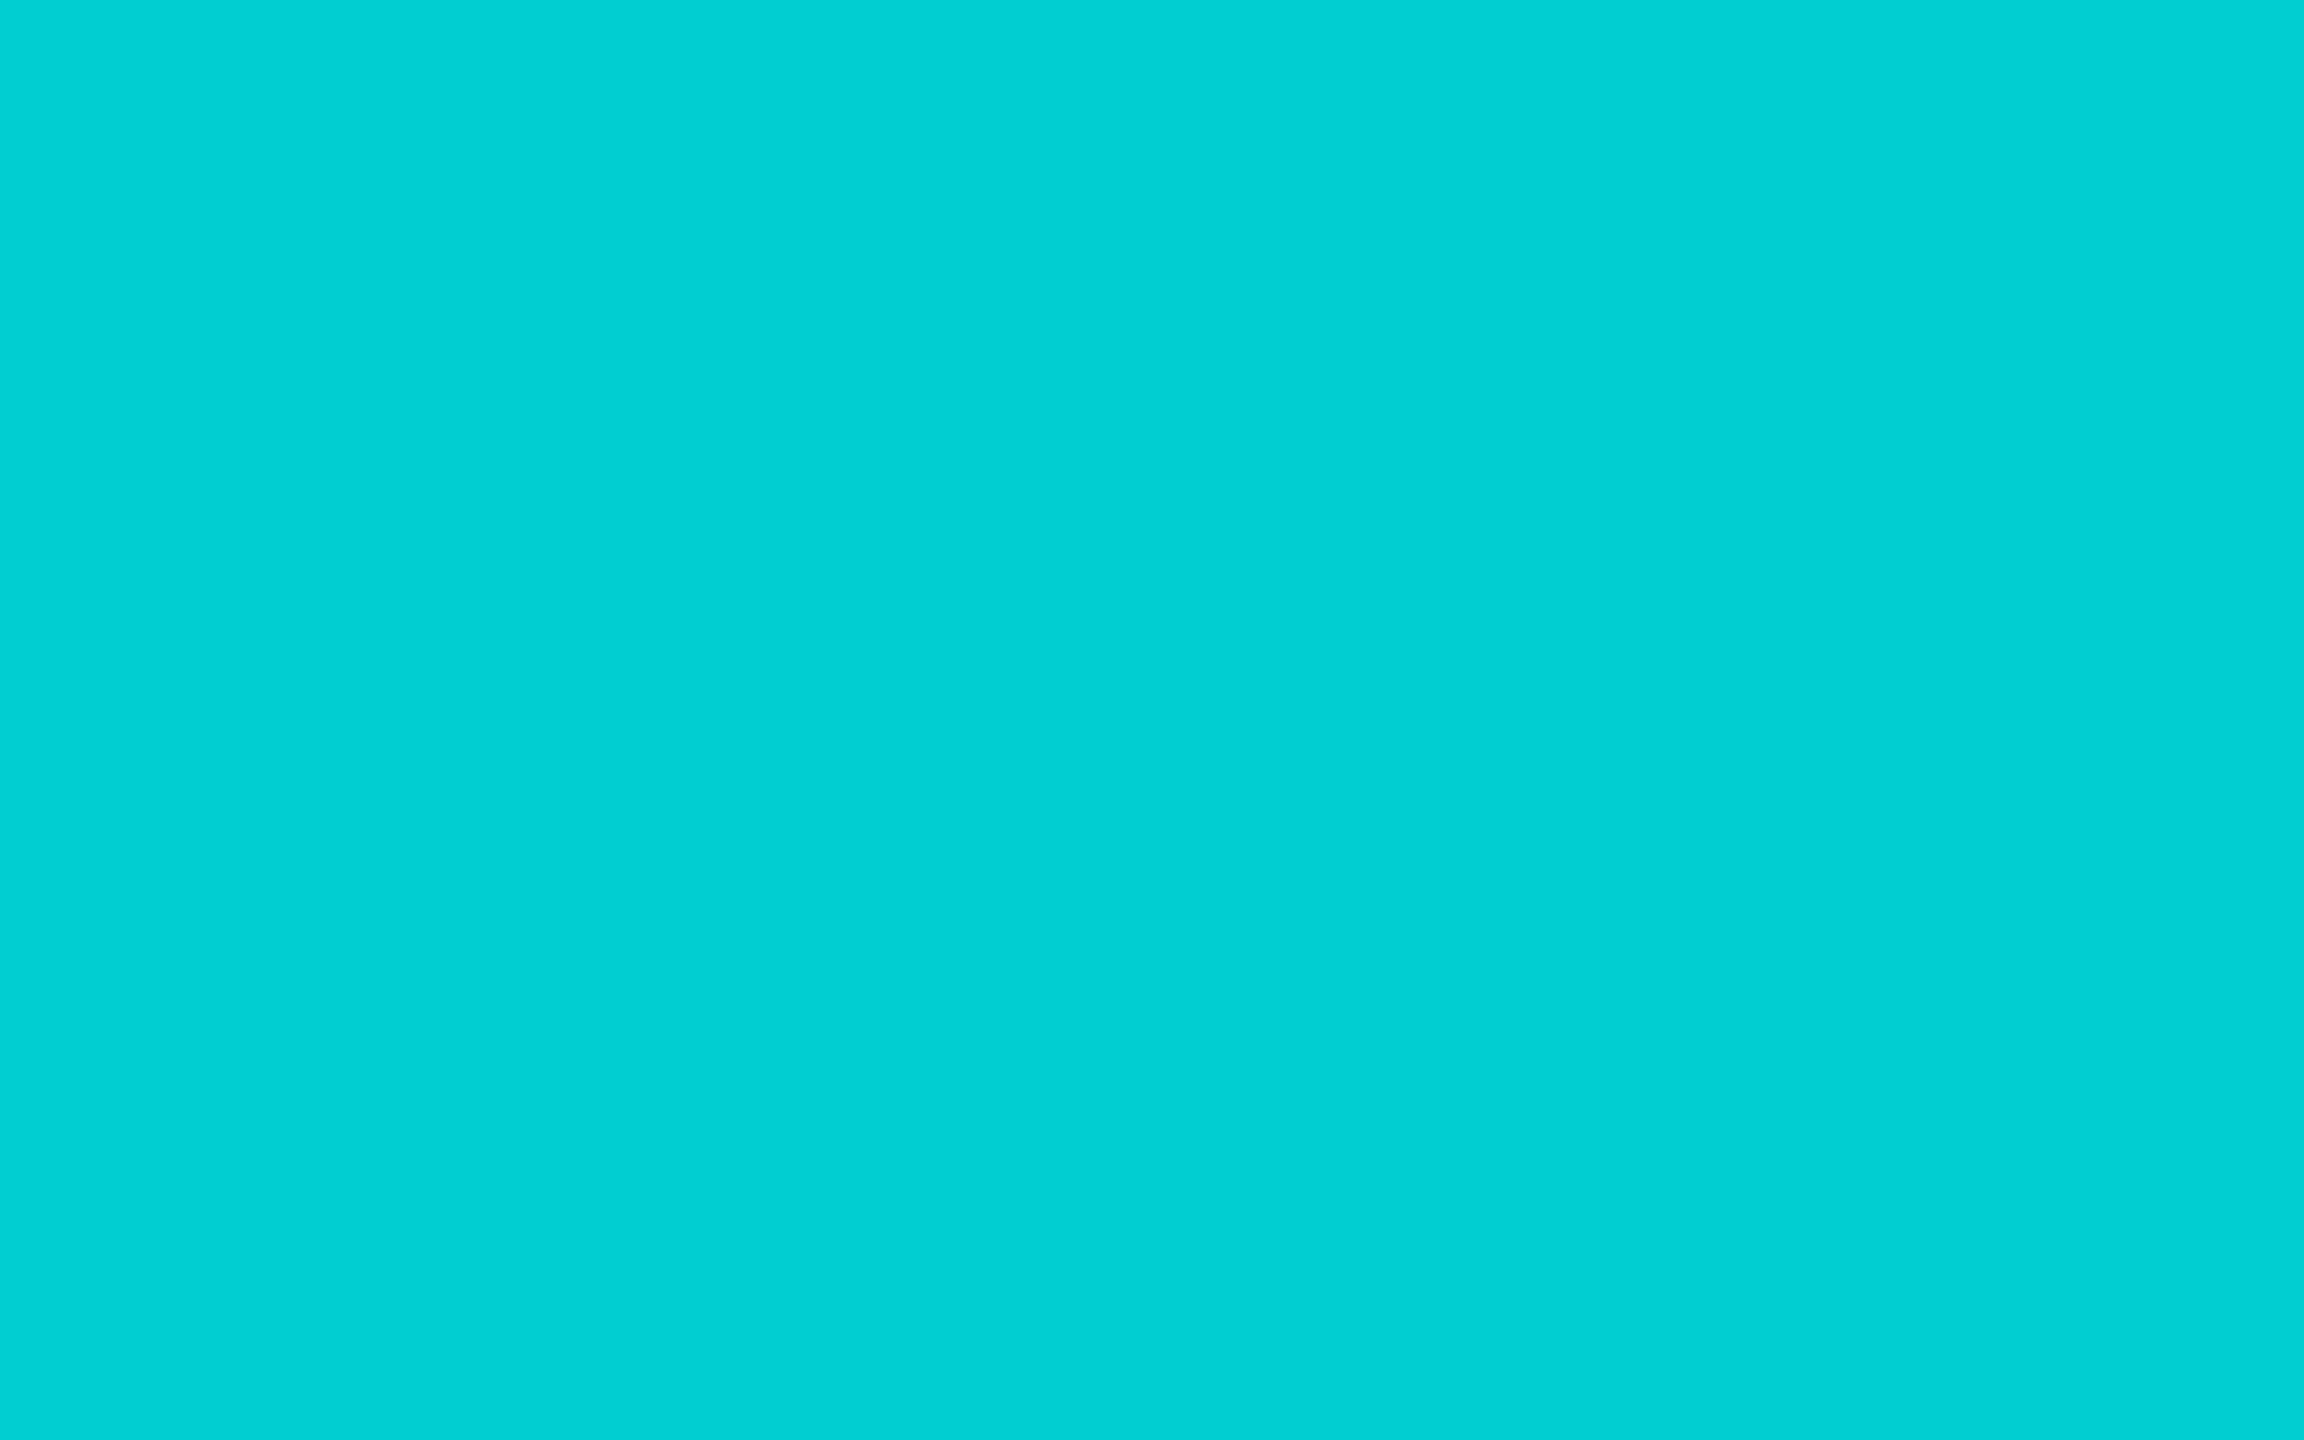 2304x1440 Dark Turquoise Solid Color Background